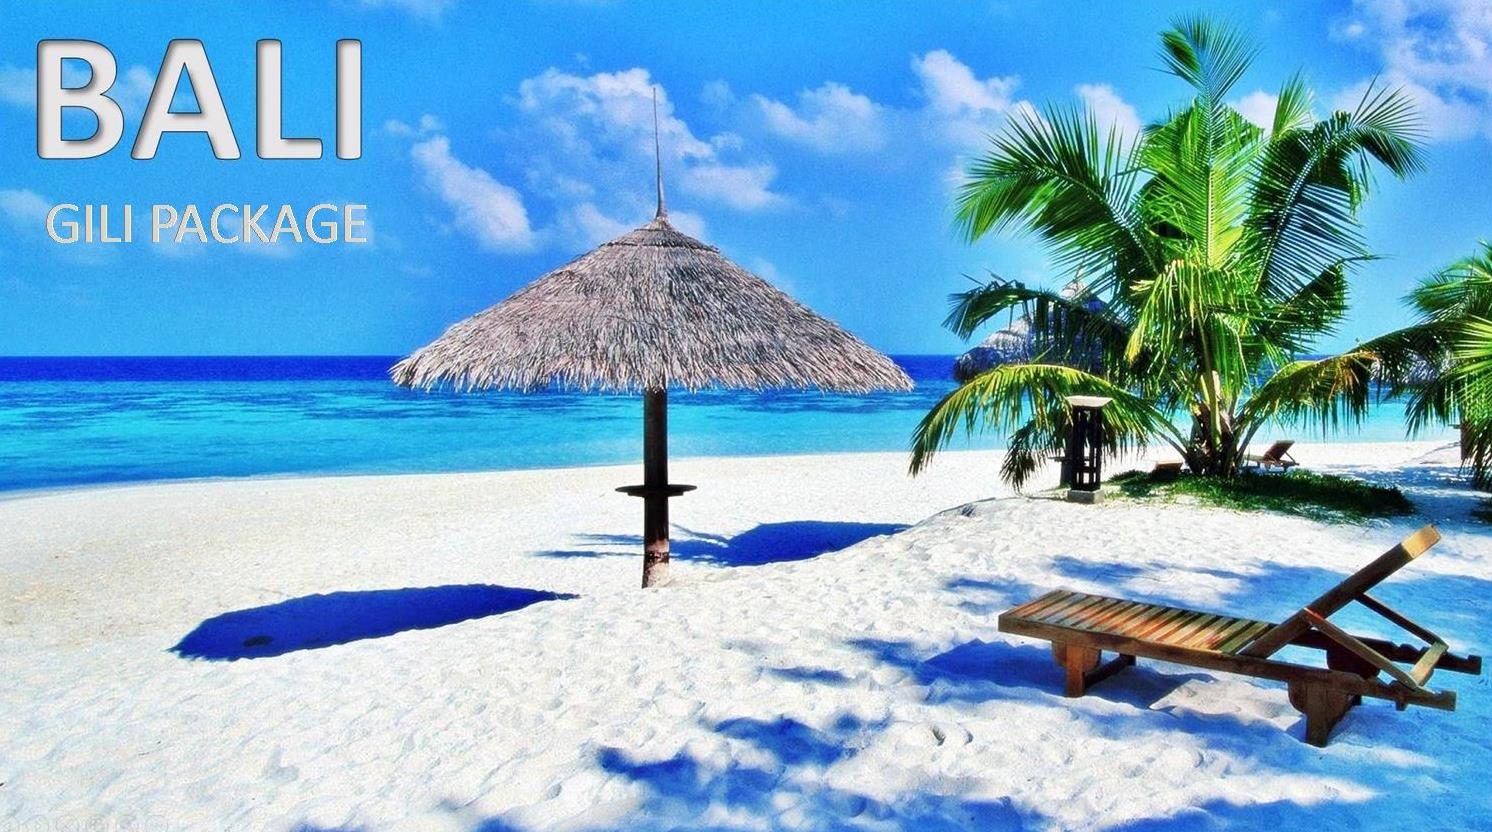 Bali Gili 6 Nights Package